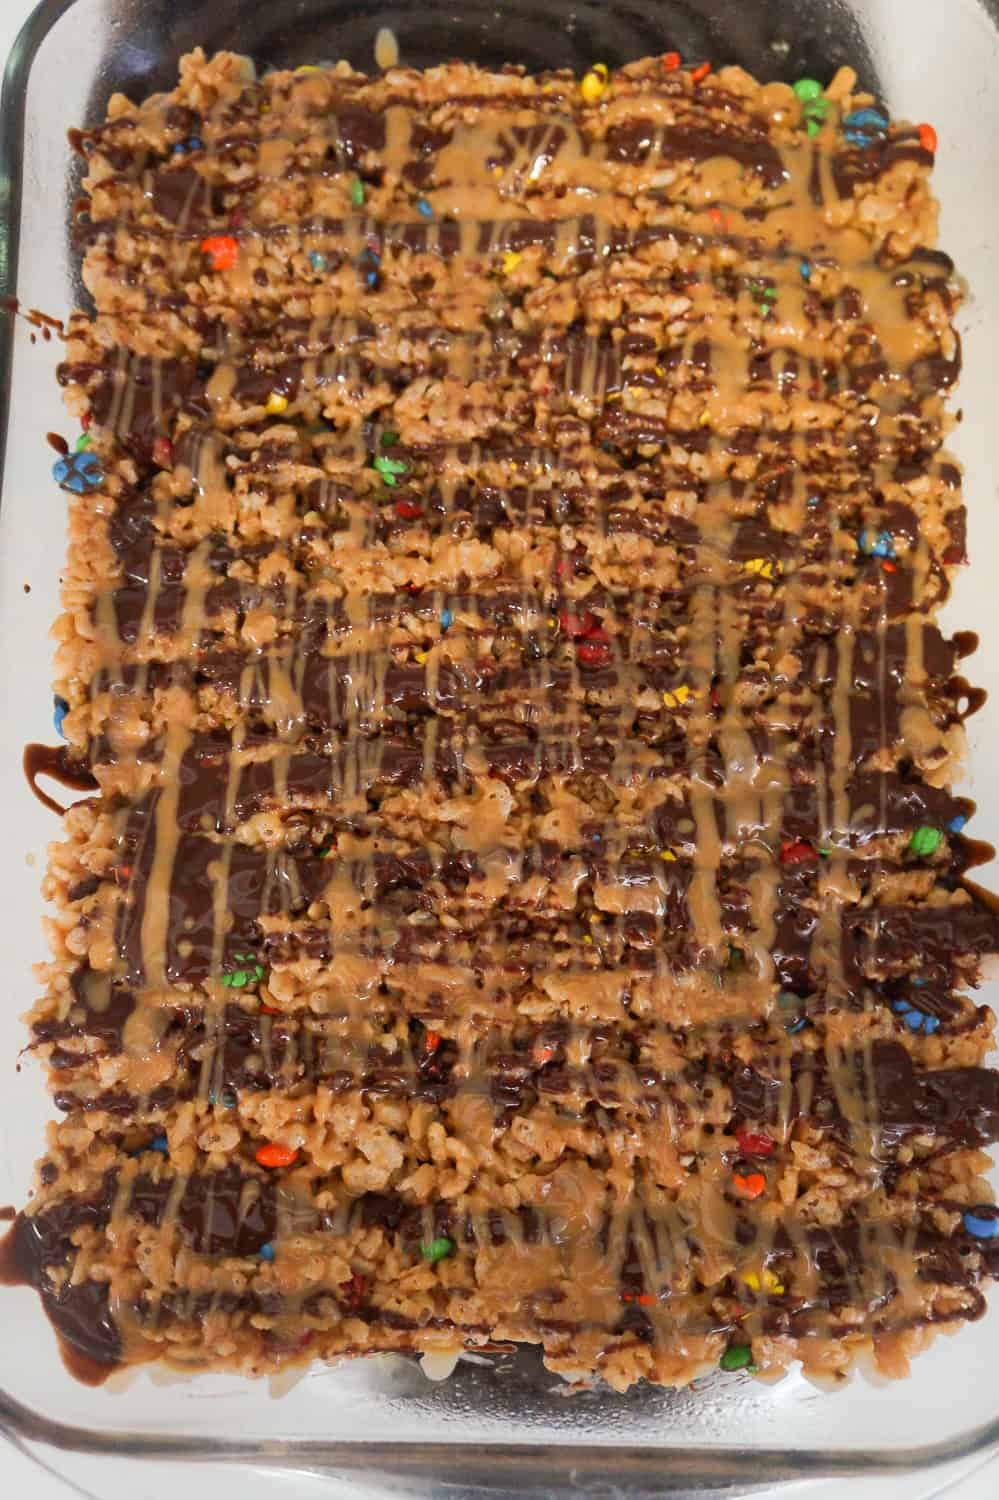 melted peanut butter and chocolate drizzled over rice krispie treats